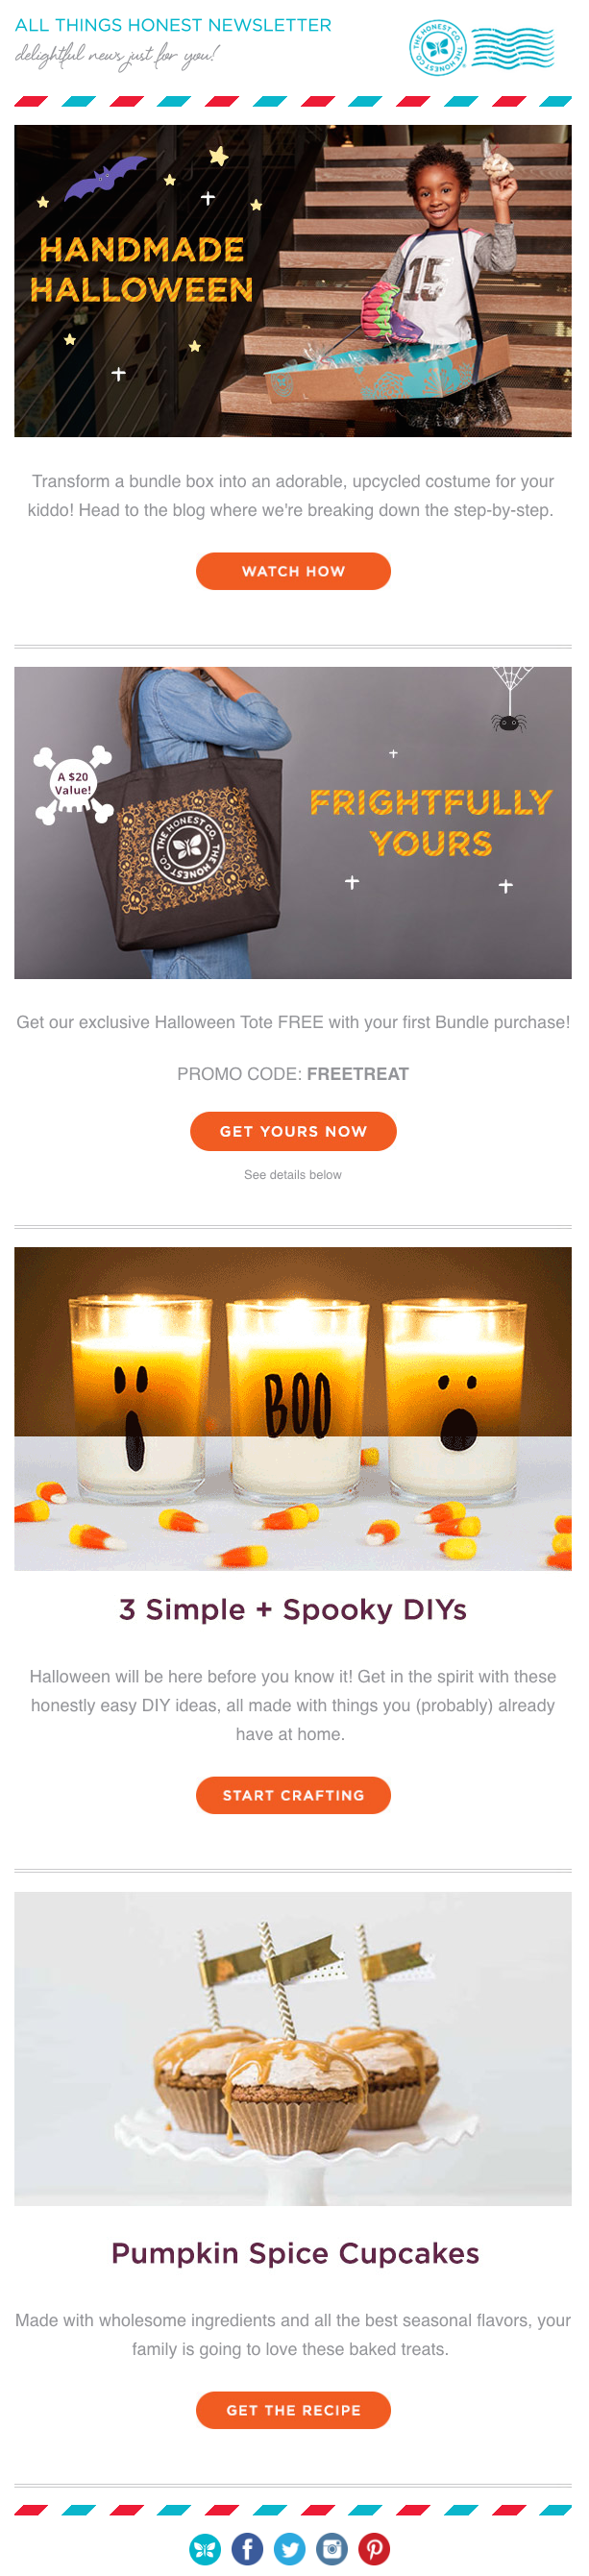 honest company halloween email campaigns